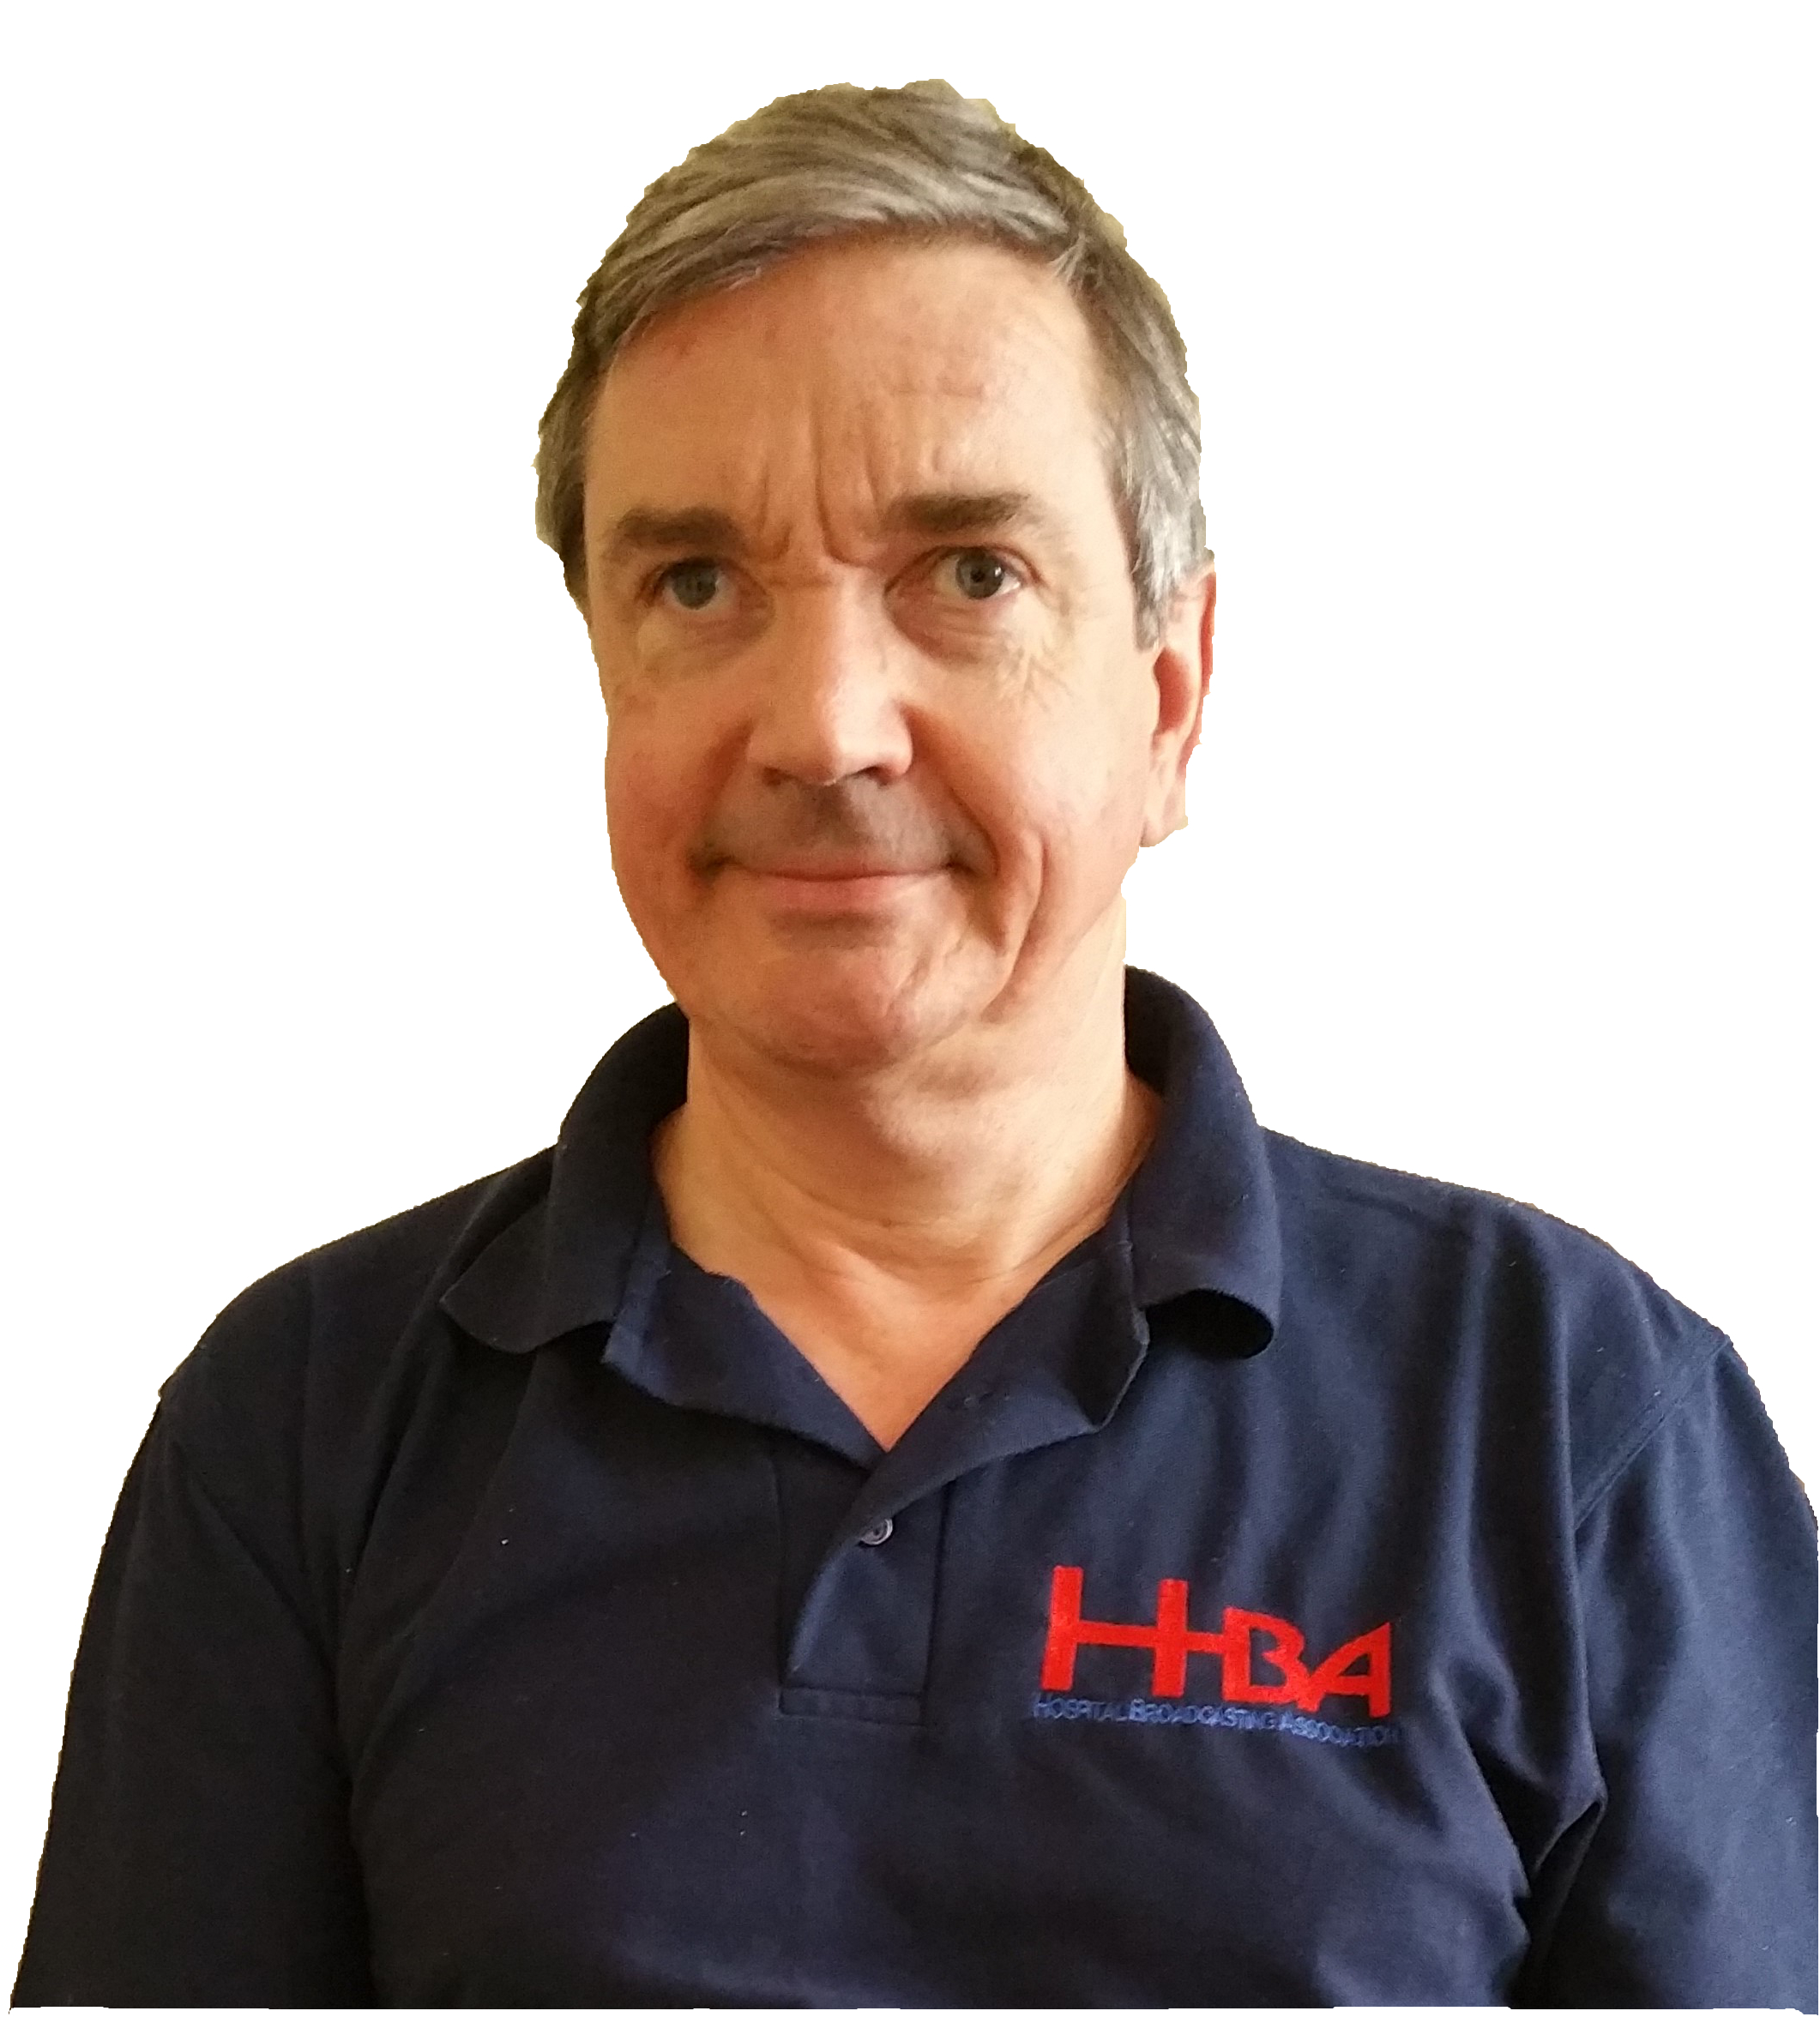 Geoff Fairbairn - HBA Specialist for Audio Engineering Advice